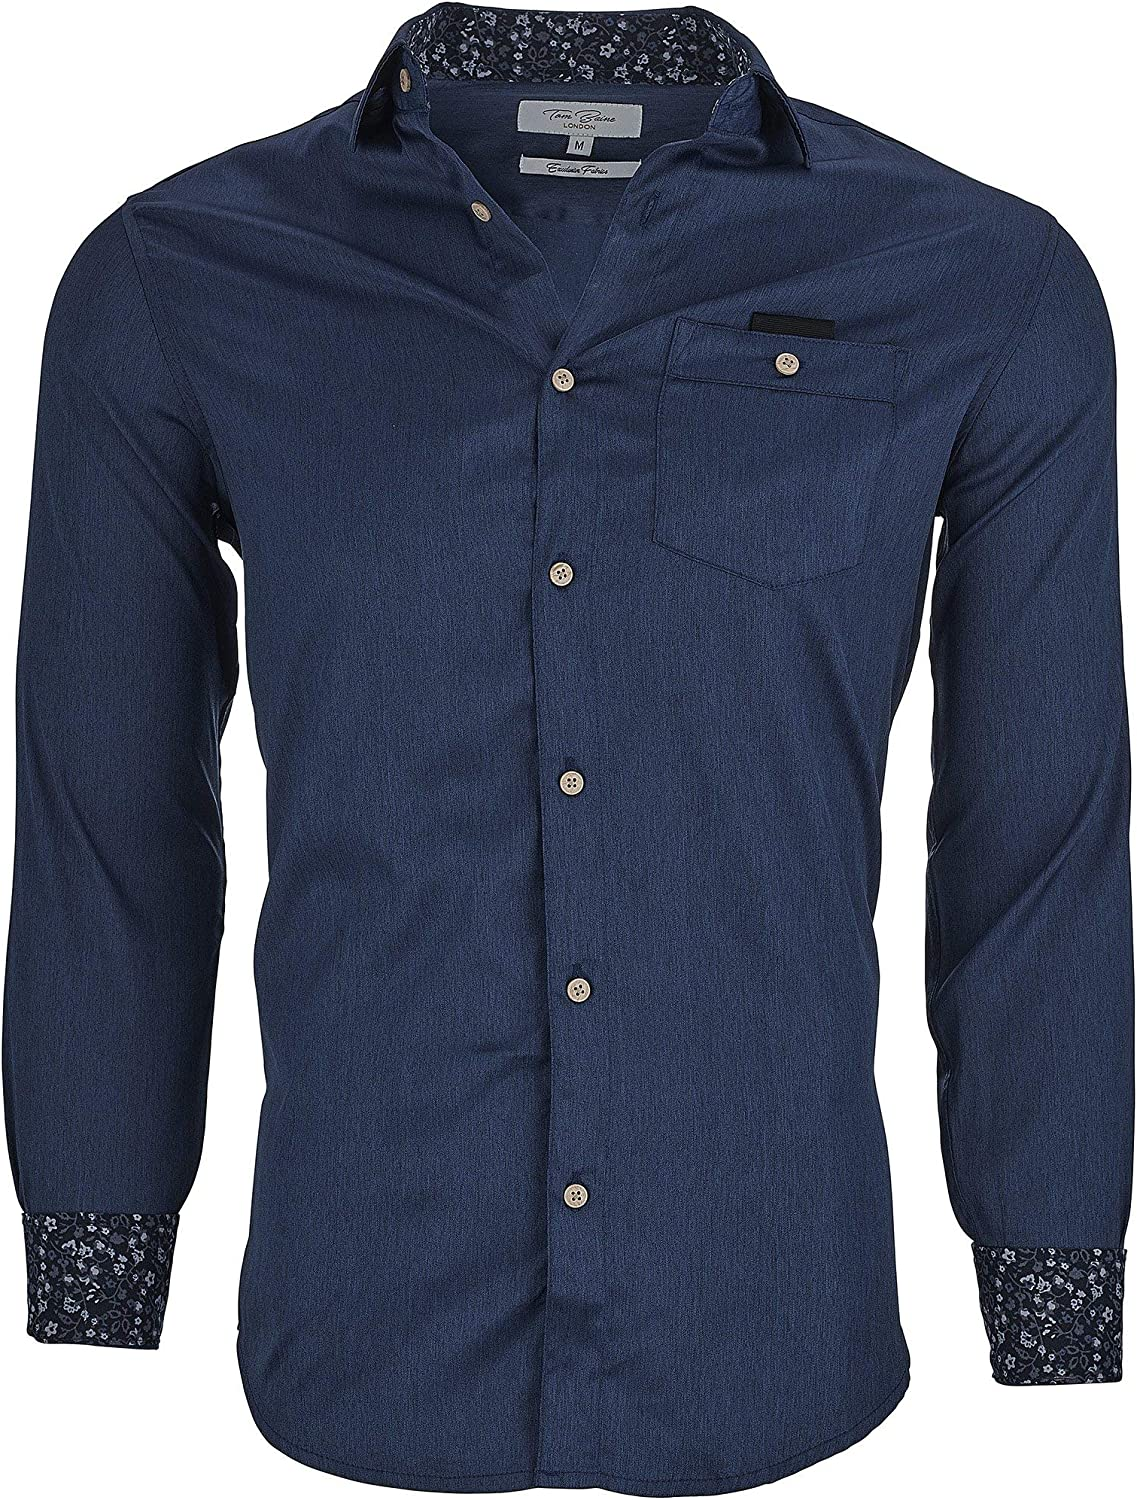 Suslo Couture Tom Baine Men's Slim Fit Non-Iron Stretch Solid Long Sleeve